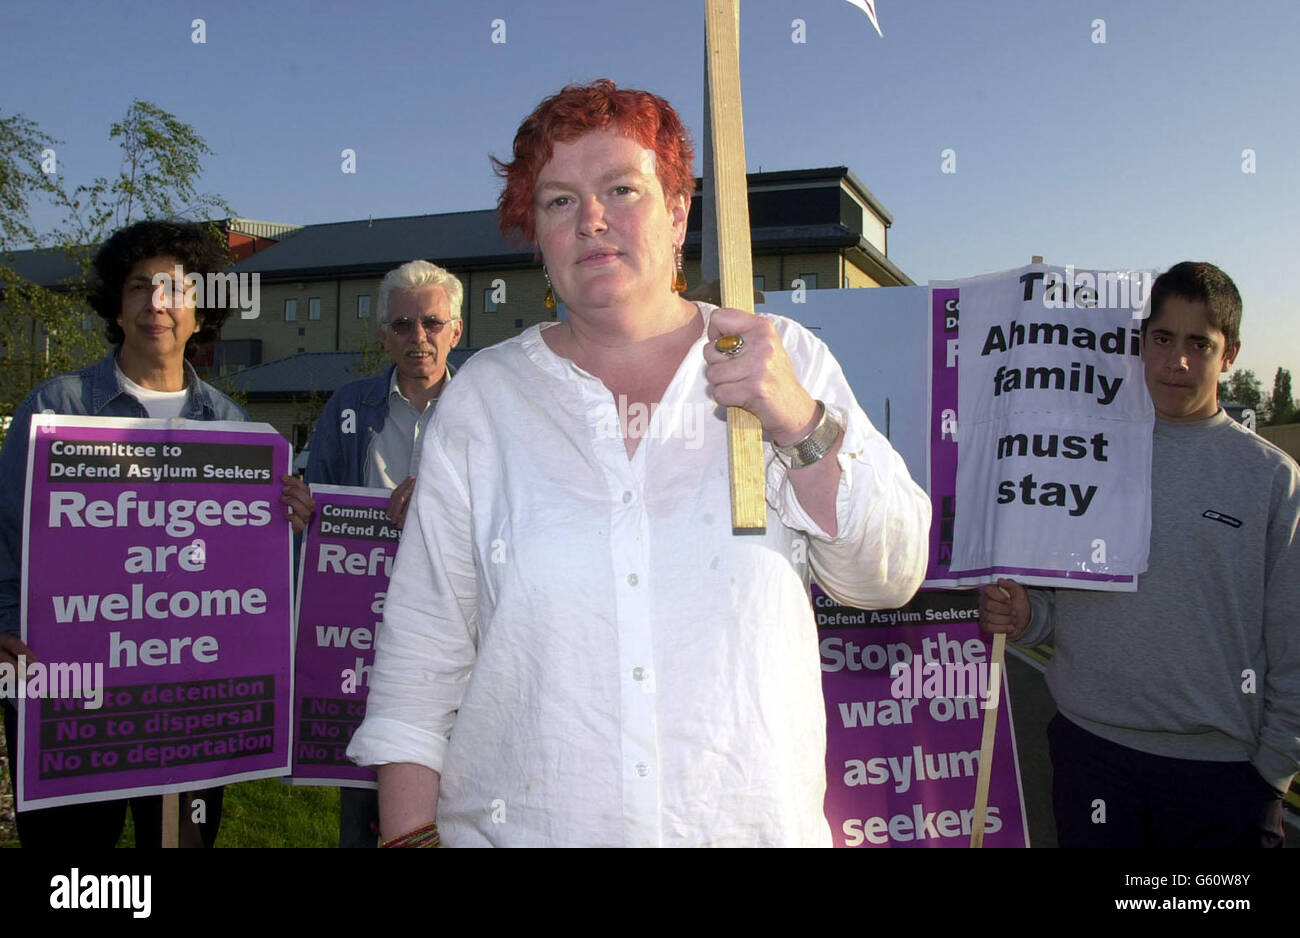 Asylum Seekers Committee protest - Stock Image